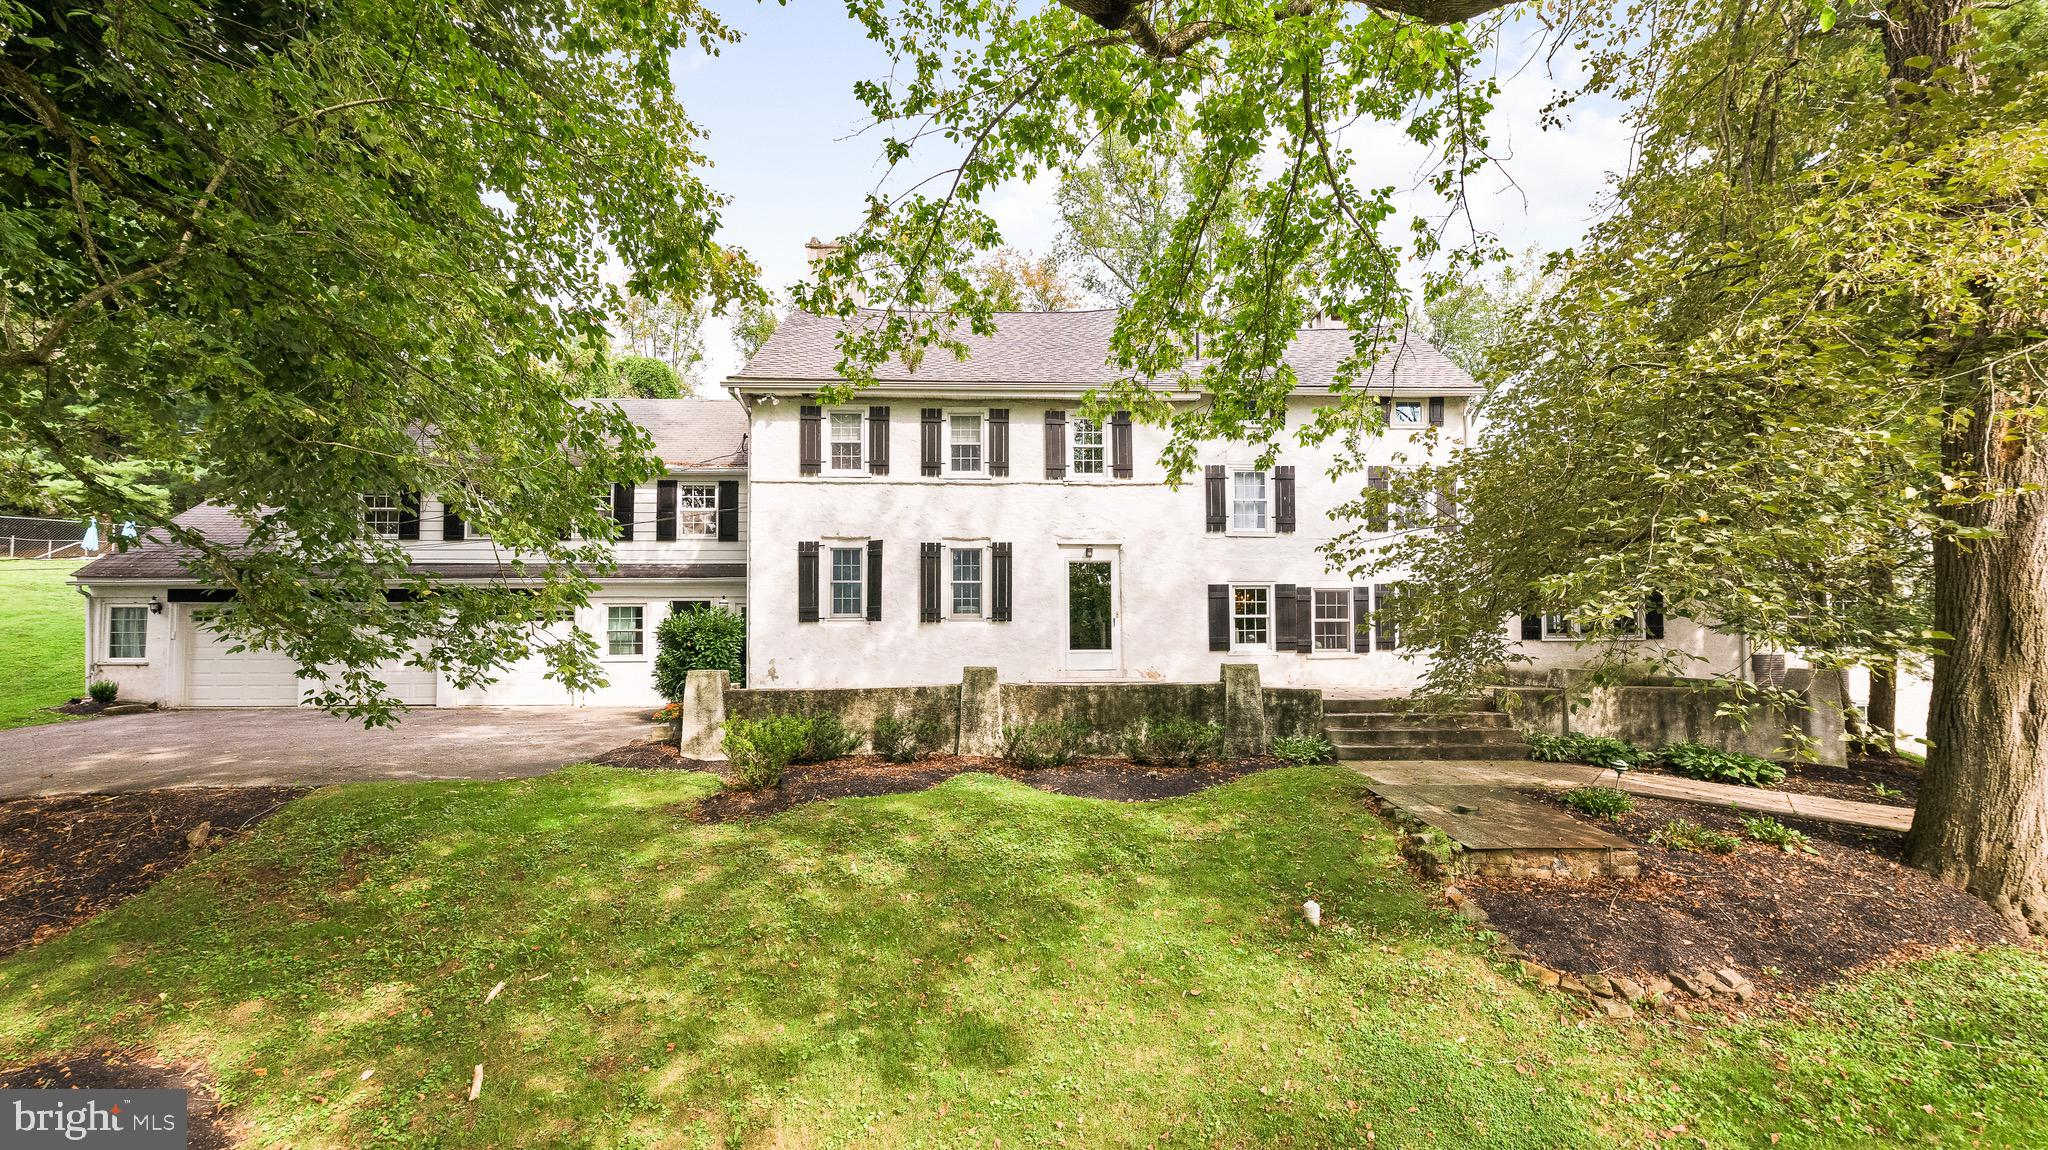 908 Lincoln Road, Phoenixville, PA 19460